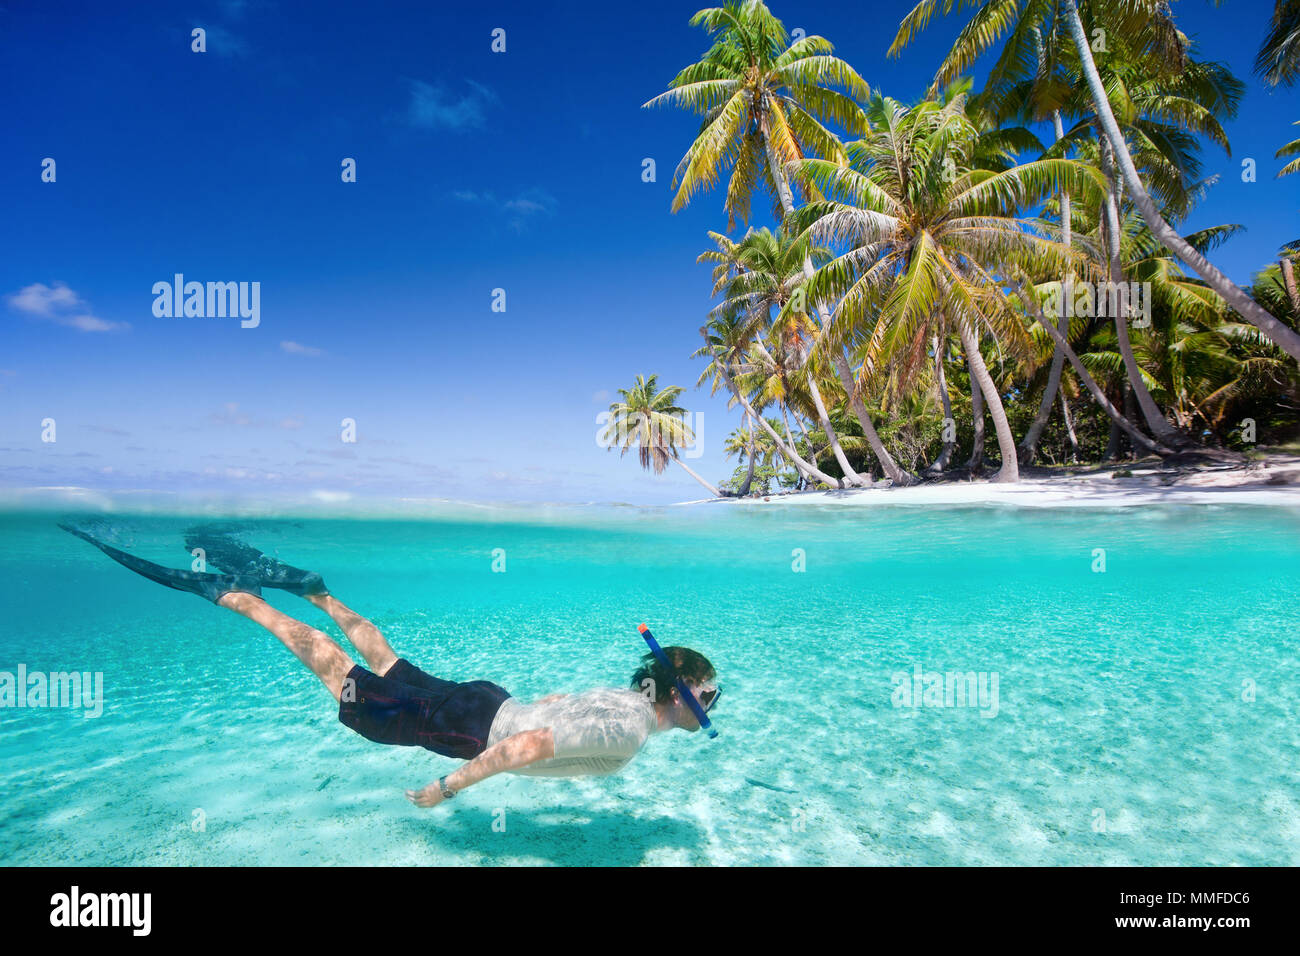 L'homme nage en eaux tropicales claire en face de l'île exotique Photo Stock